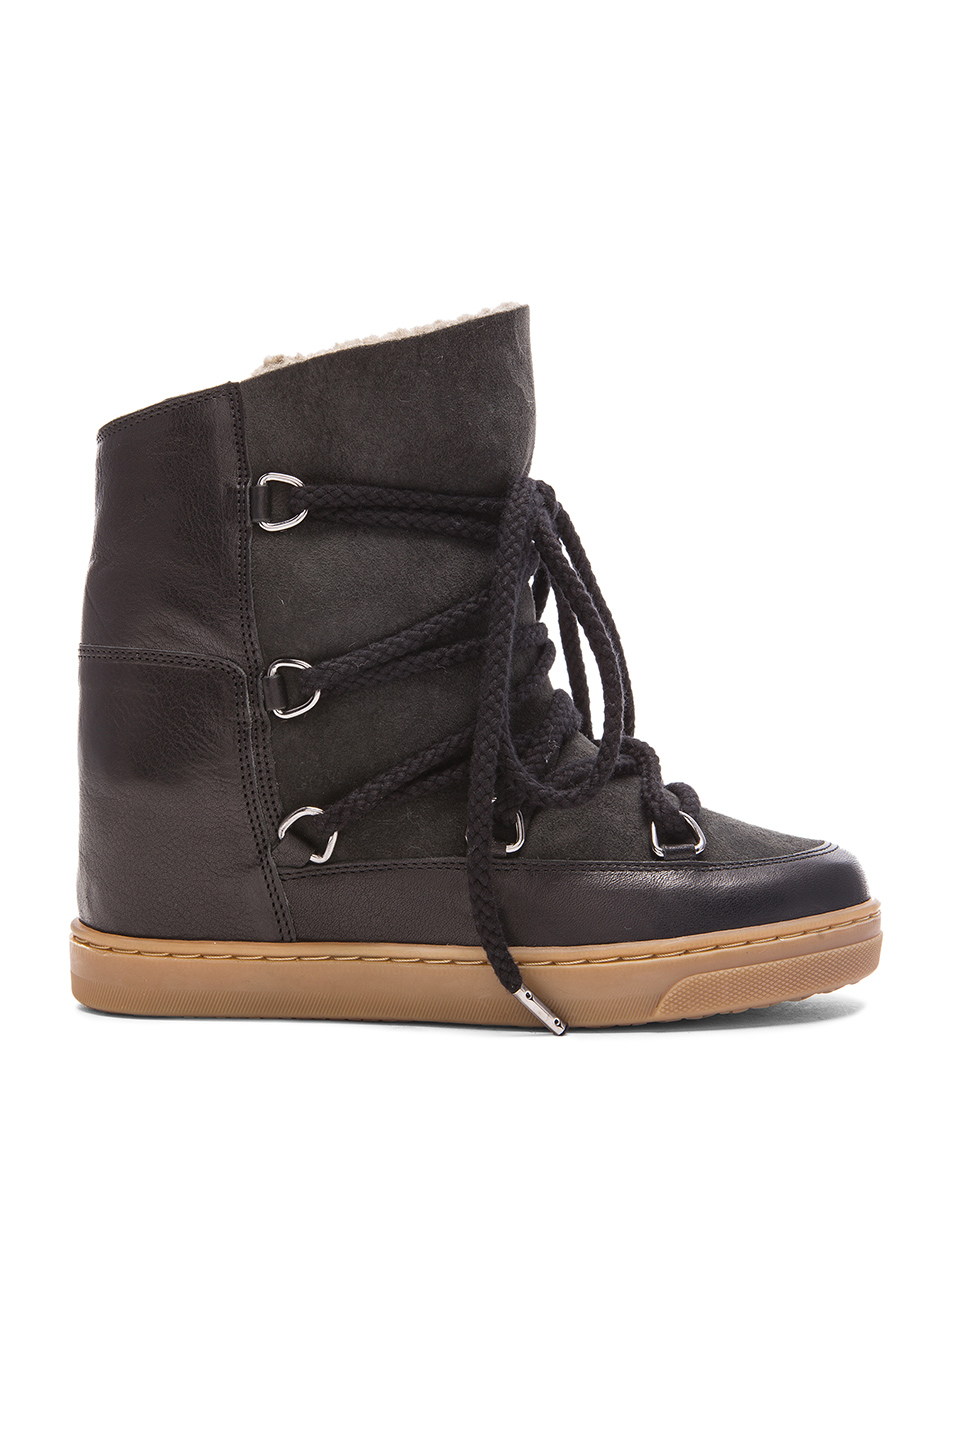 isabel marant etoile nowles shearling and leather boots in black fwrd. Black Bedroom Furniture Sets. Home Design Ideas